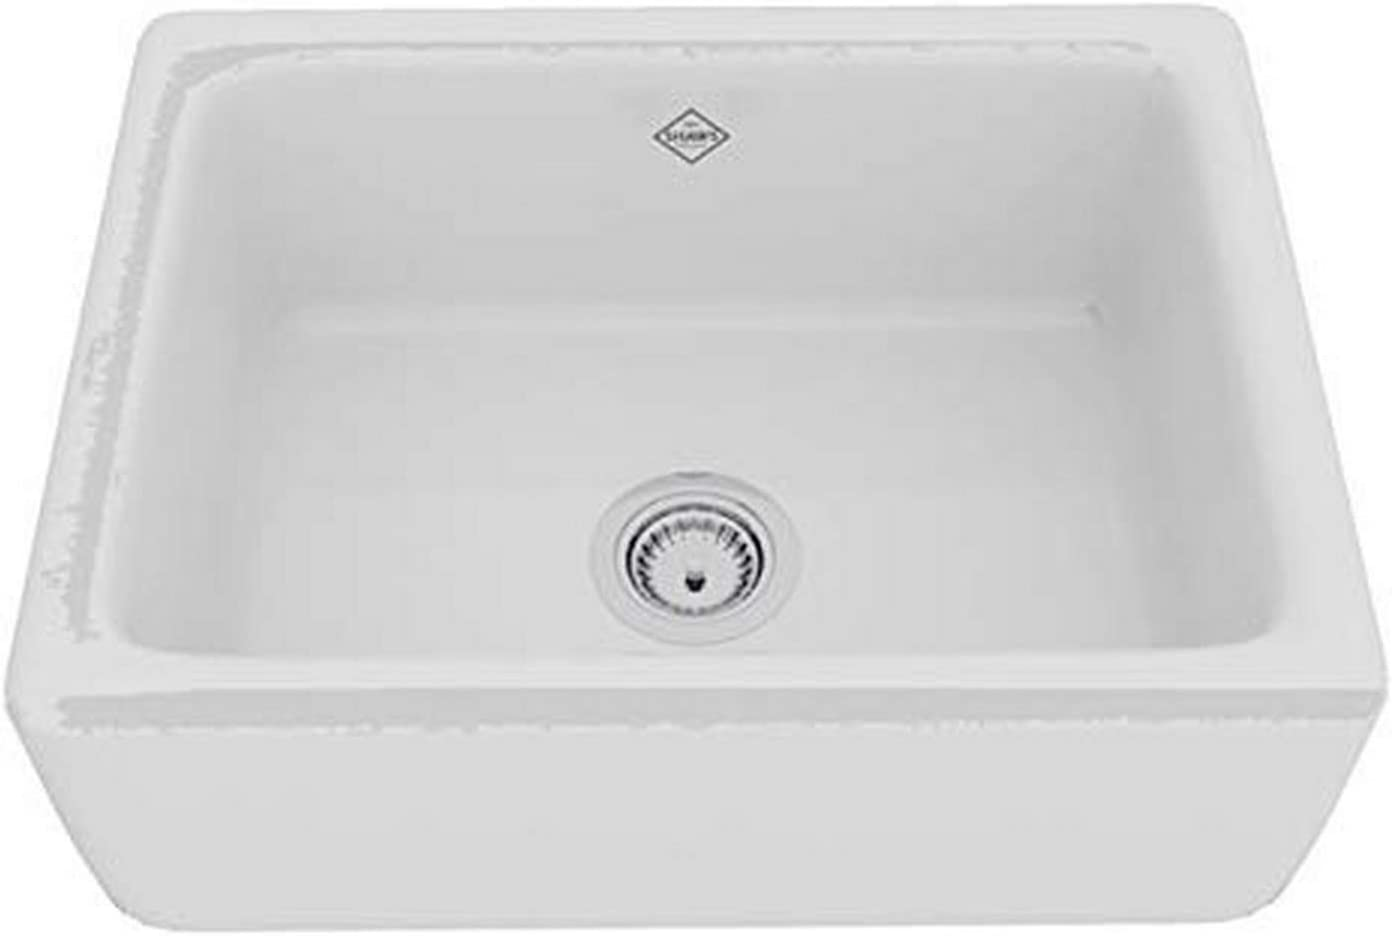 Rohl RC2418WH FIRECLAY KITCHEN SINKS, 24-Inch by 18-Inch by 10-Inch, White